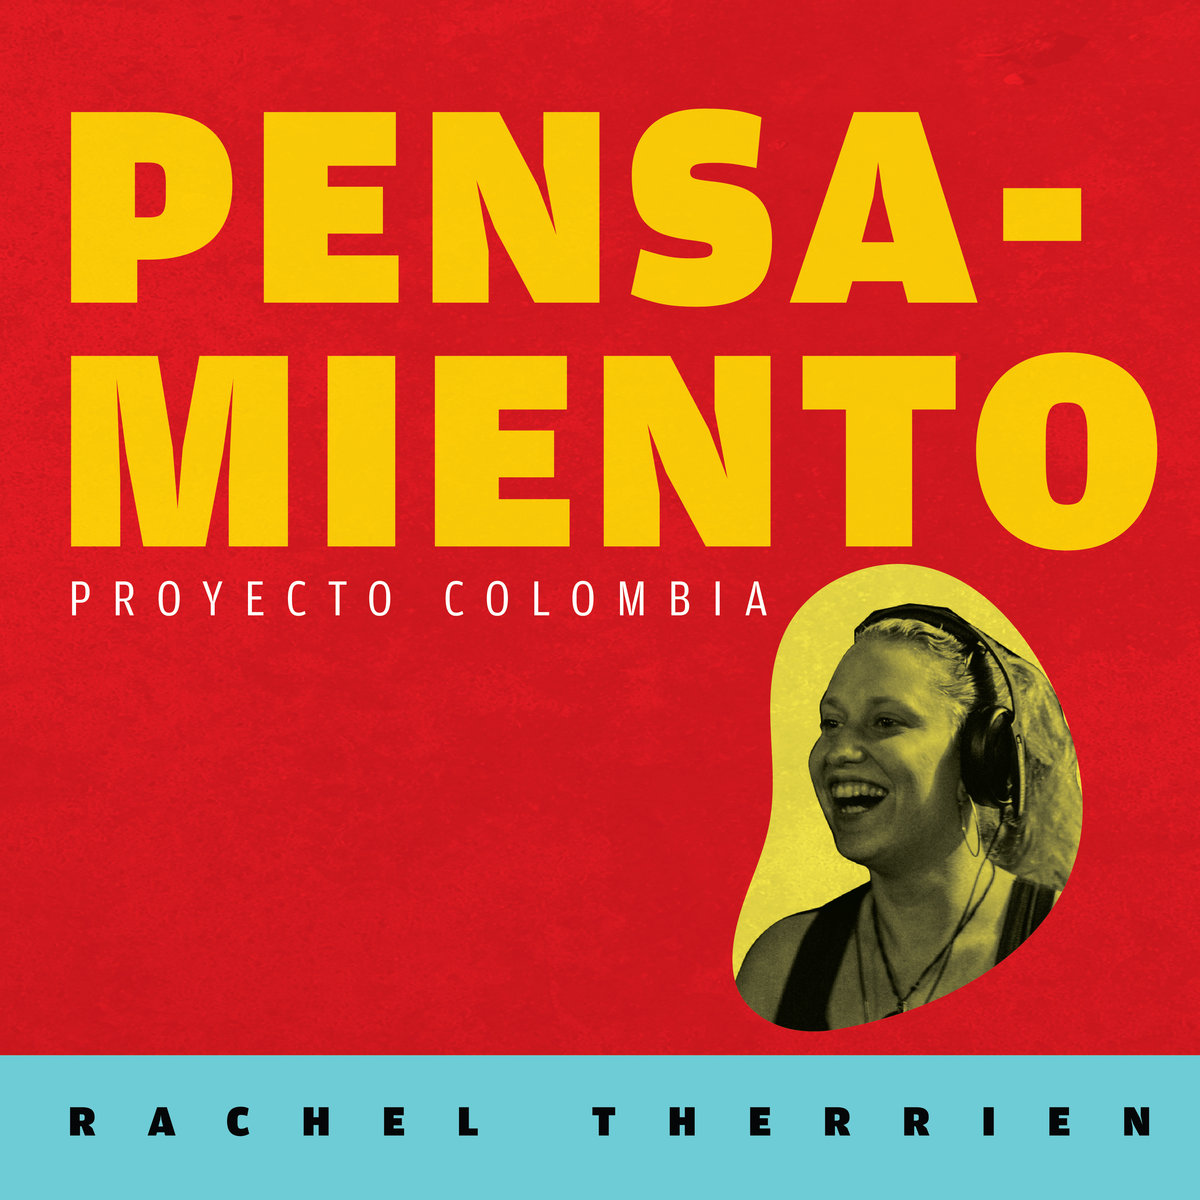 Latin Jazz Corner Picks Rachel Therrien's 'La Guagua' as their Featured Track of the Week